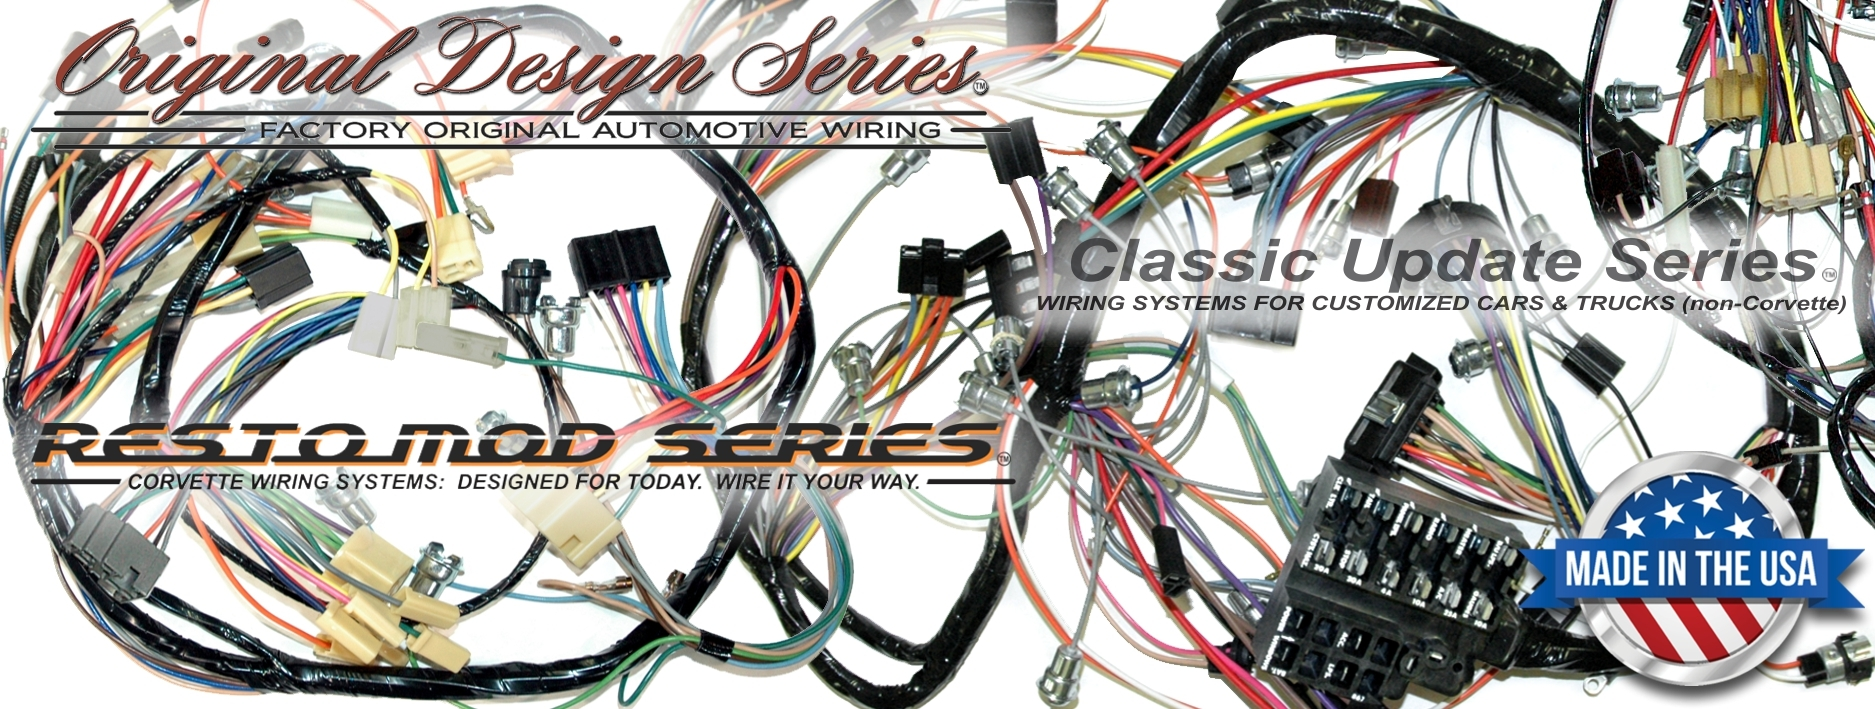 Exact Oem Reproduction Wiring Harnesses And Restomod Systems 240z Distributor Individual Complete